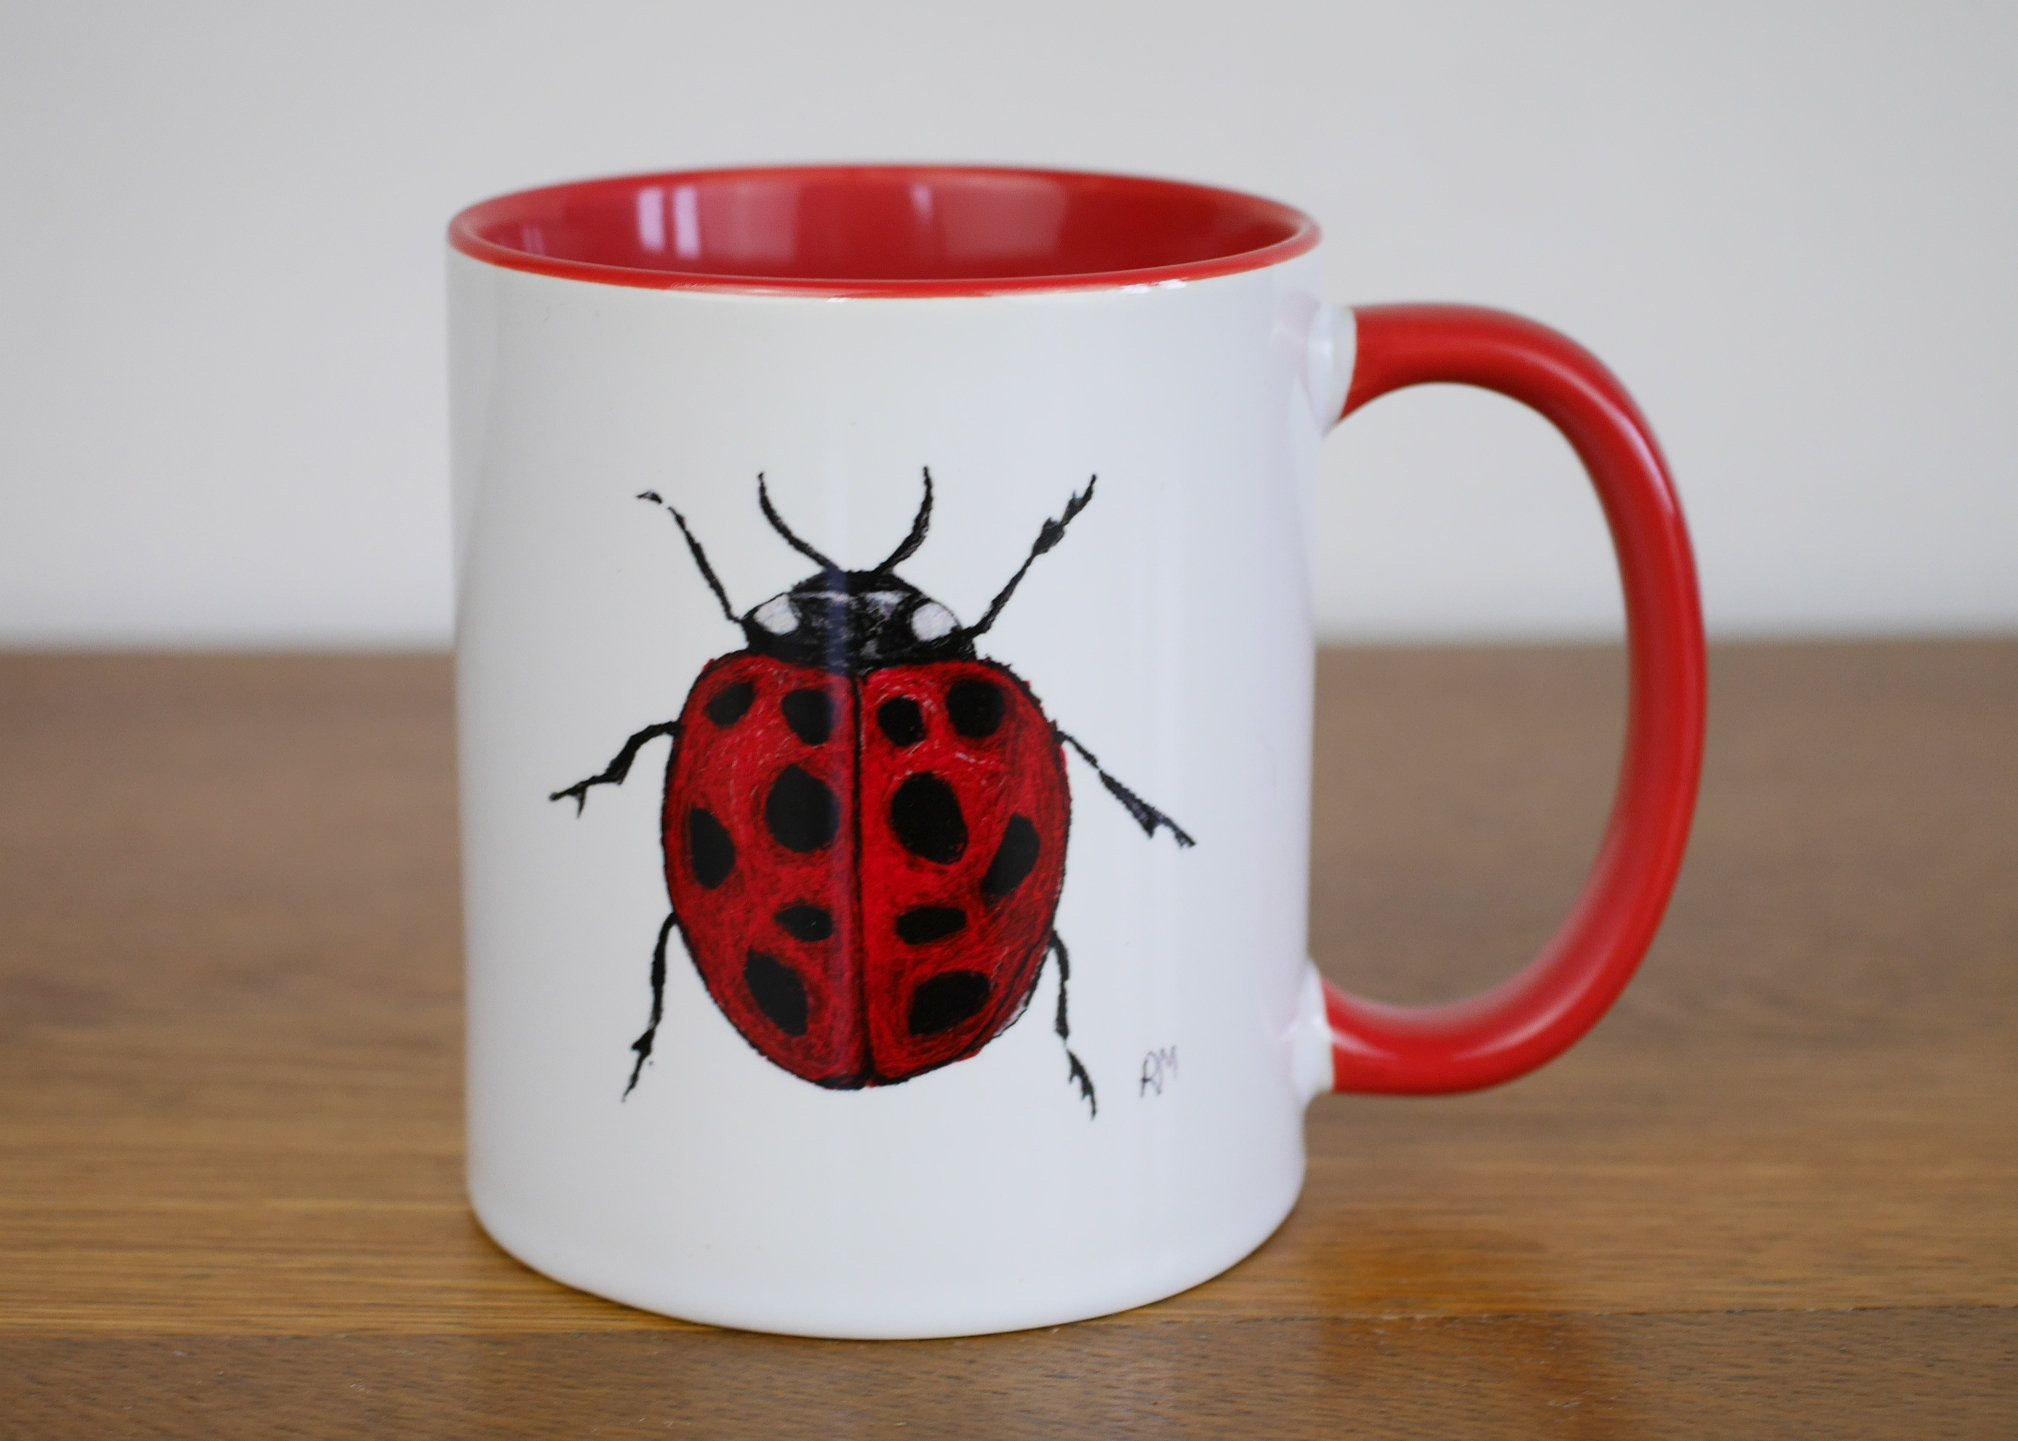 Ladybird Mug For Insect Cup Ceramic WED9I2YeH